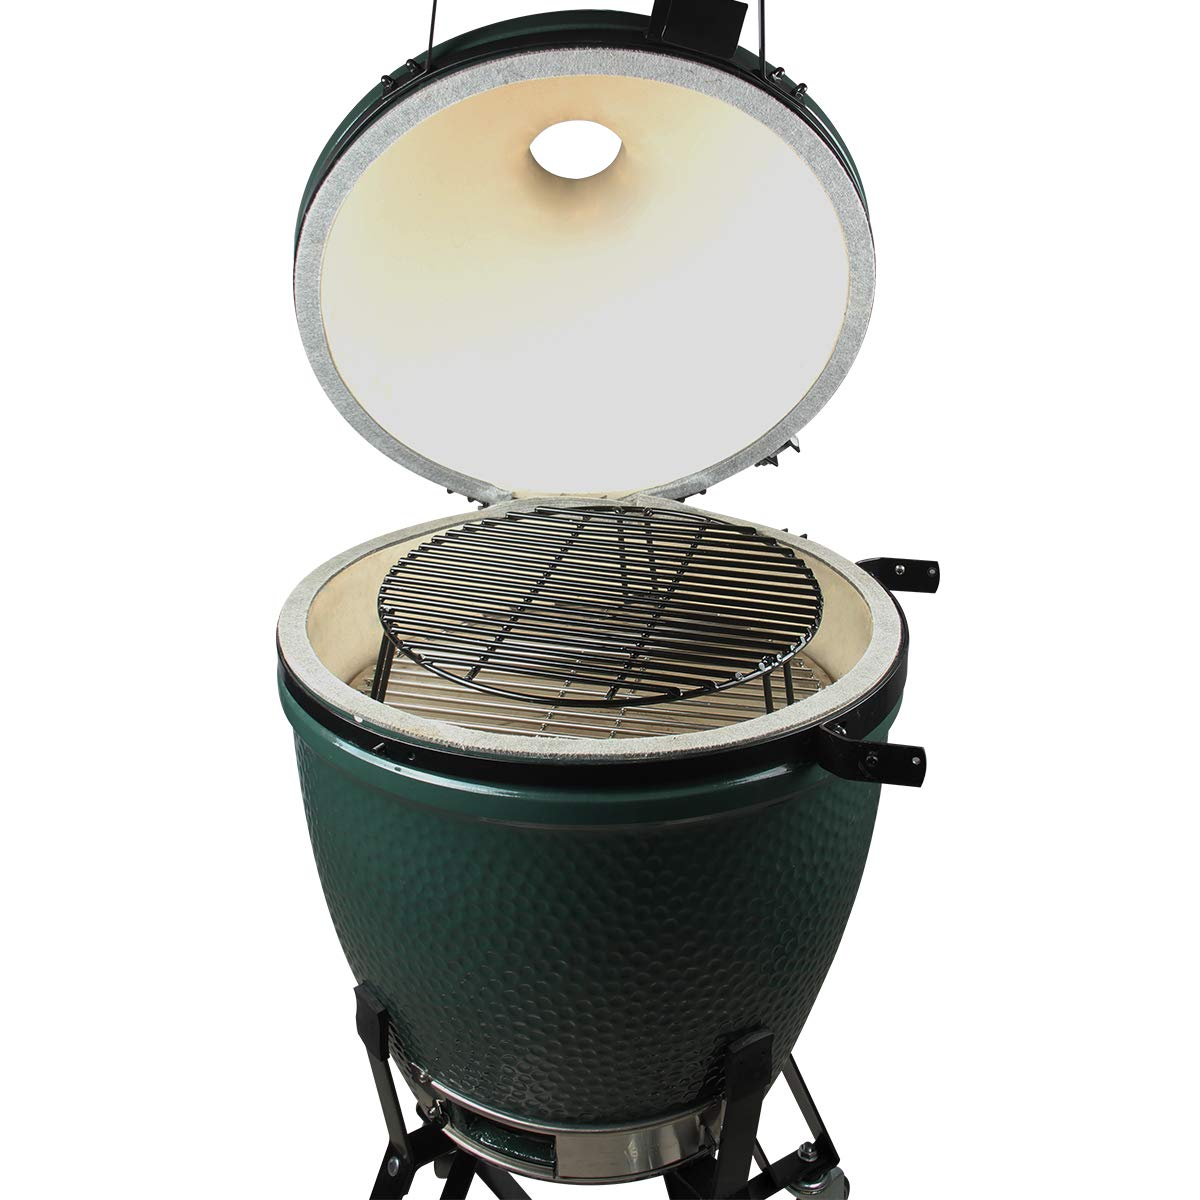 BBQ Grill Extender Rack,Kamado Warmer Rack,Stack Rack with enamel coating Increase Grilling Surface Fit Large & XL Big Green Egg,Kamado Joe Classic,18'' & bigger cooking-diameter grill (L-15 inch) by Dracarys (Image #5)